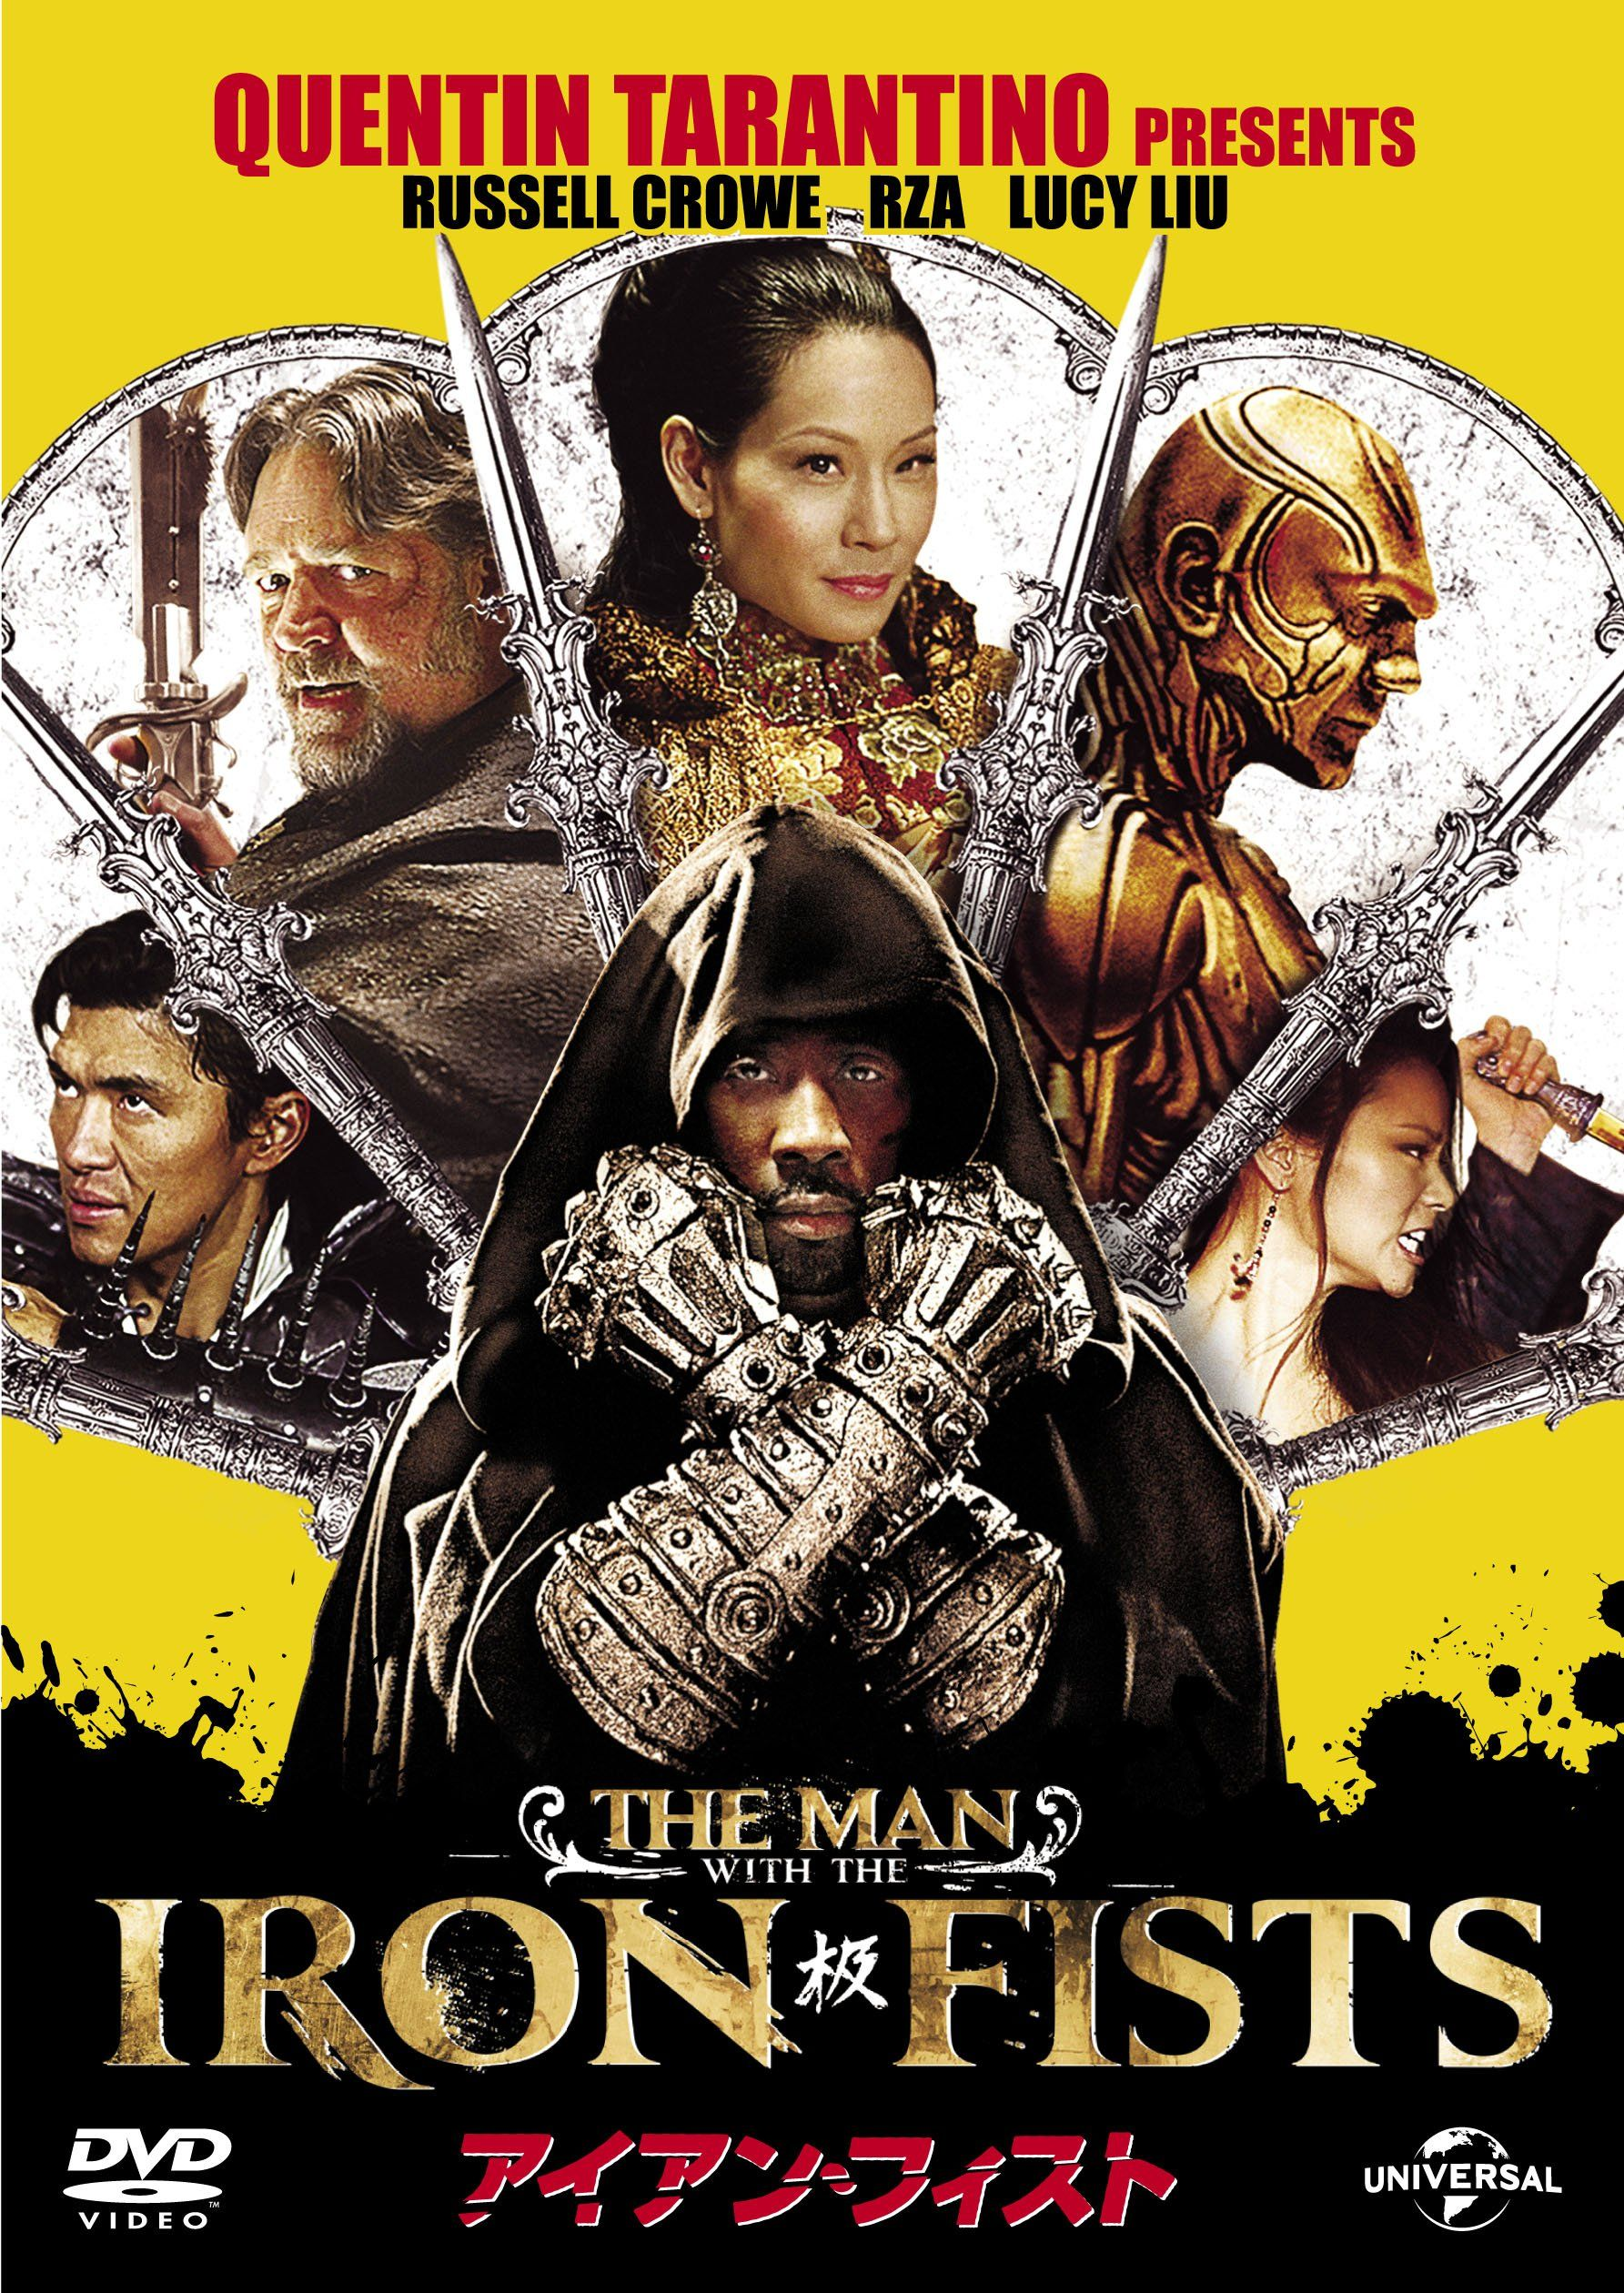 The Man With The Iron Fists 2012 The Man With The Iron Fists Japan Movie Poster Iron Fist